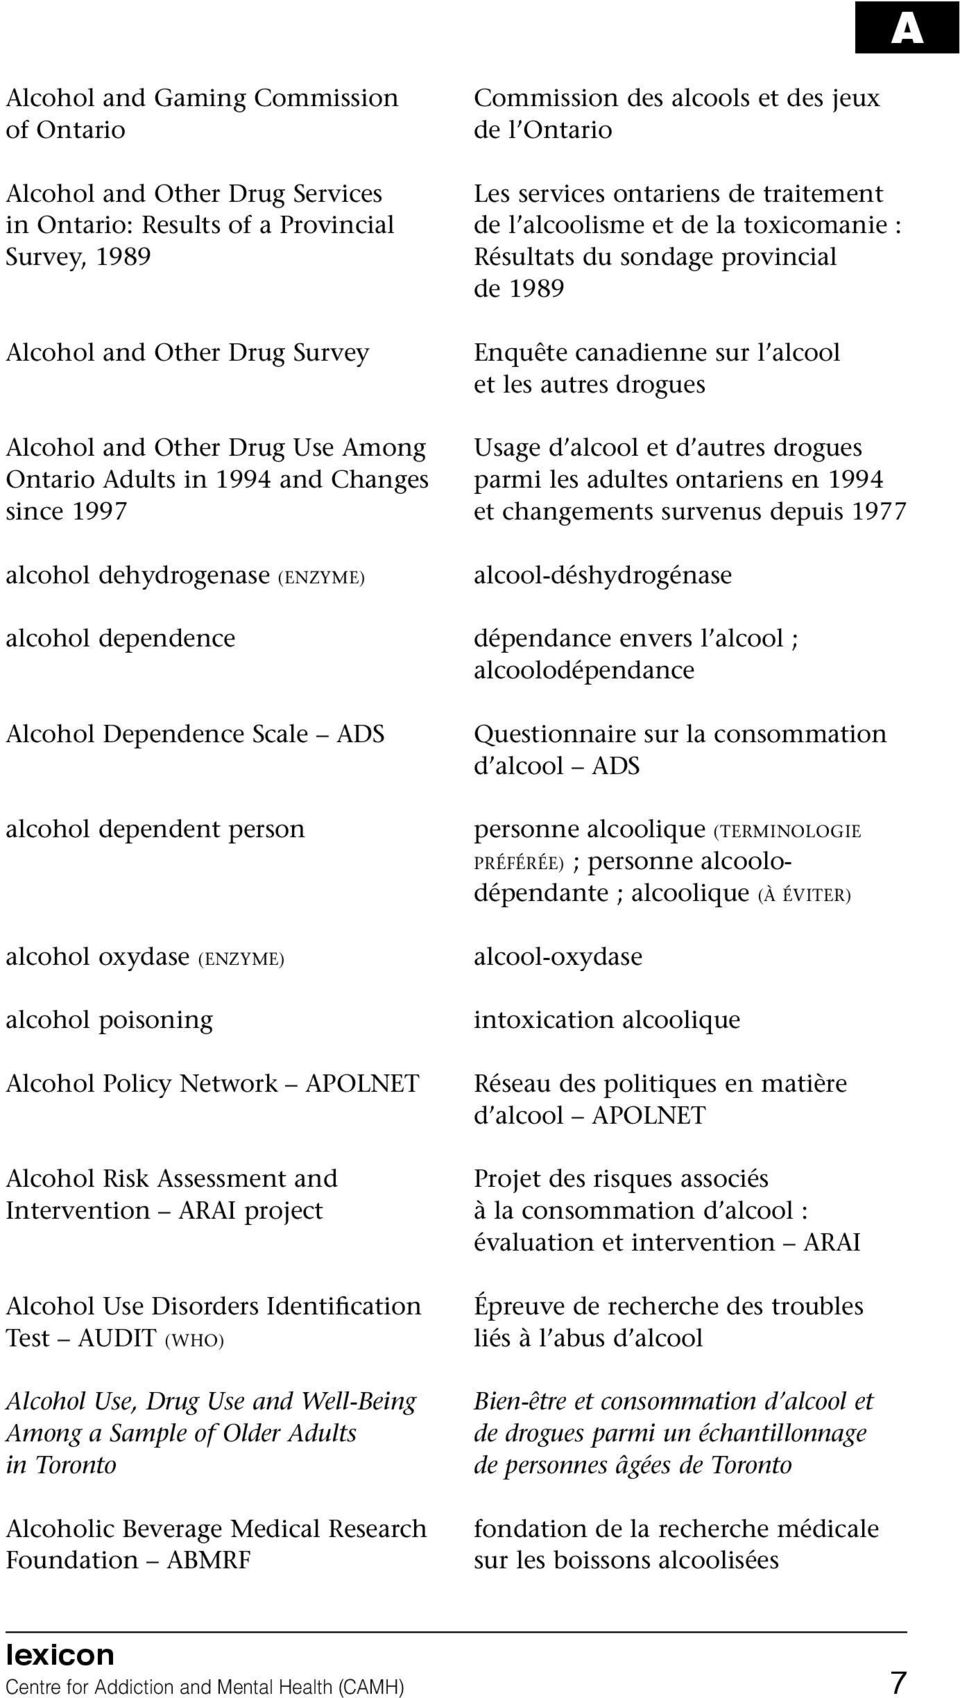 Among Usage d alcool et d autres drogues Ontario Adults in 1994 and Changes parmi les adultes ontariens en 1994 since 1997 et changements survenus depuis 1977 alcohol dehydrogenase (ENZYME)